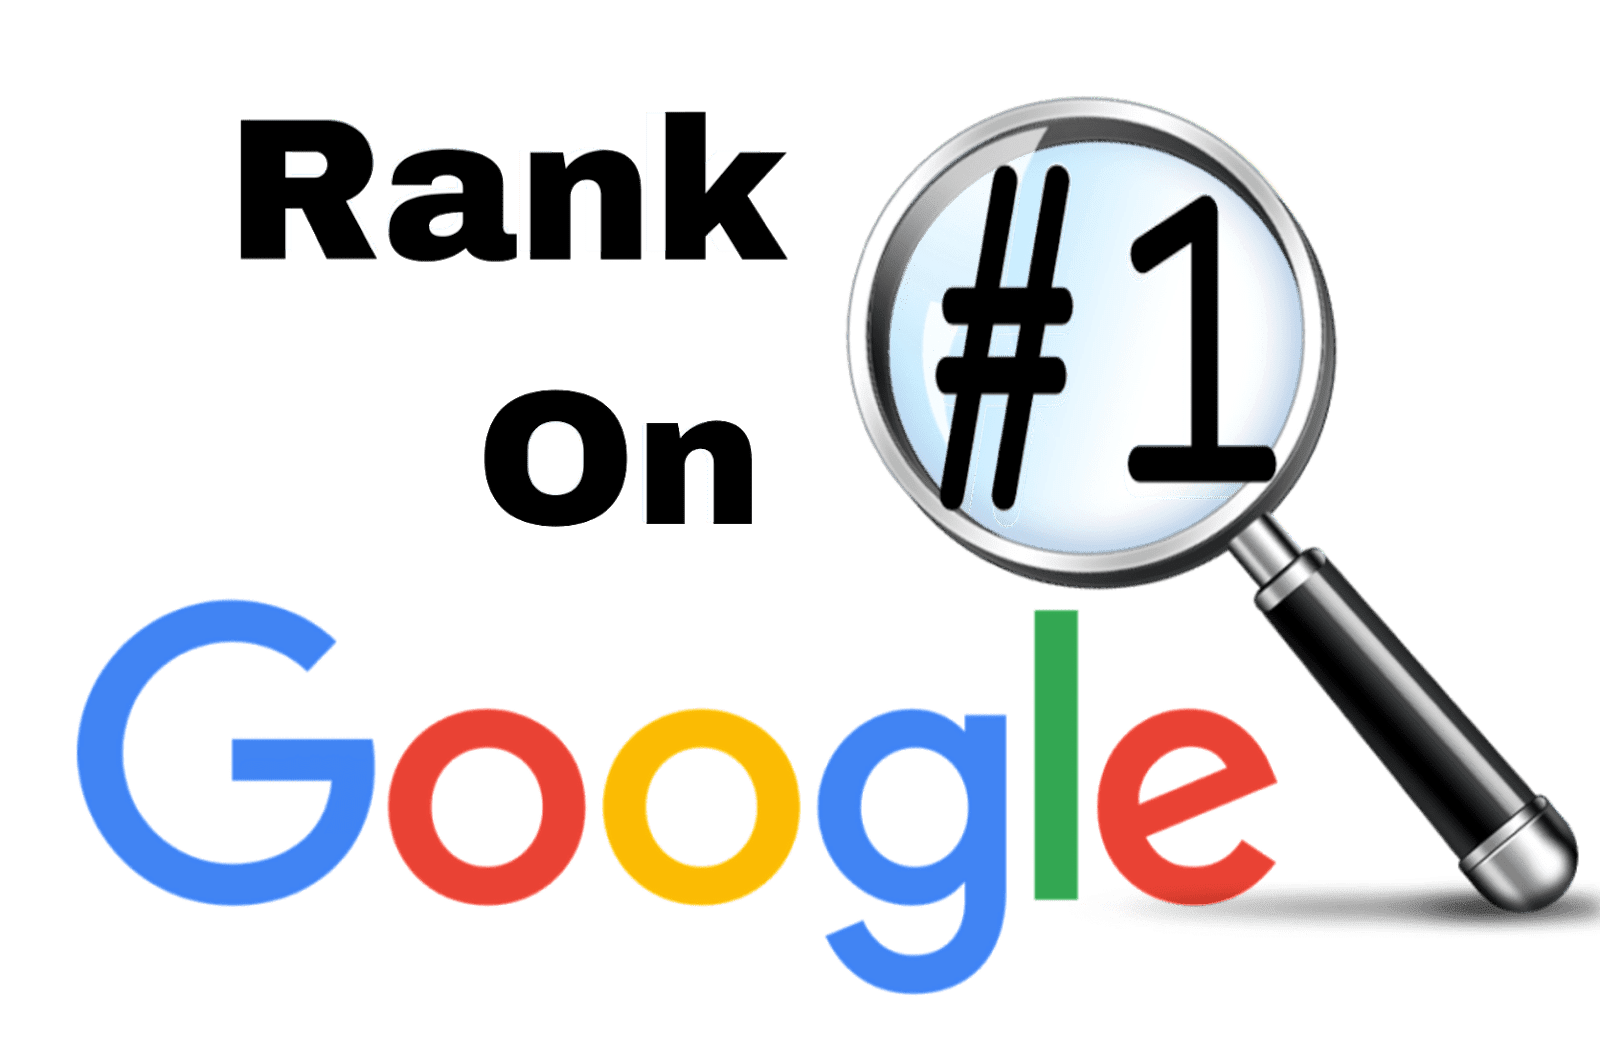 All in One Seo Strategy - Push your site Google 1st Page